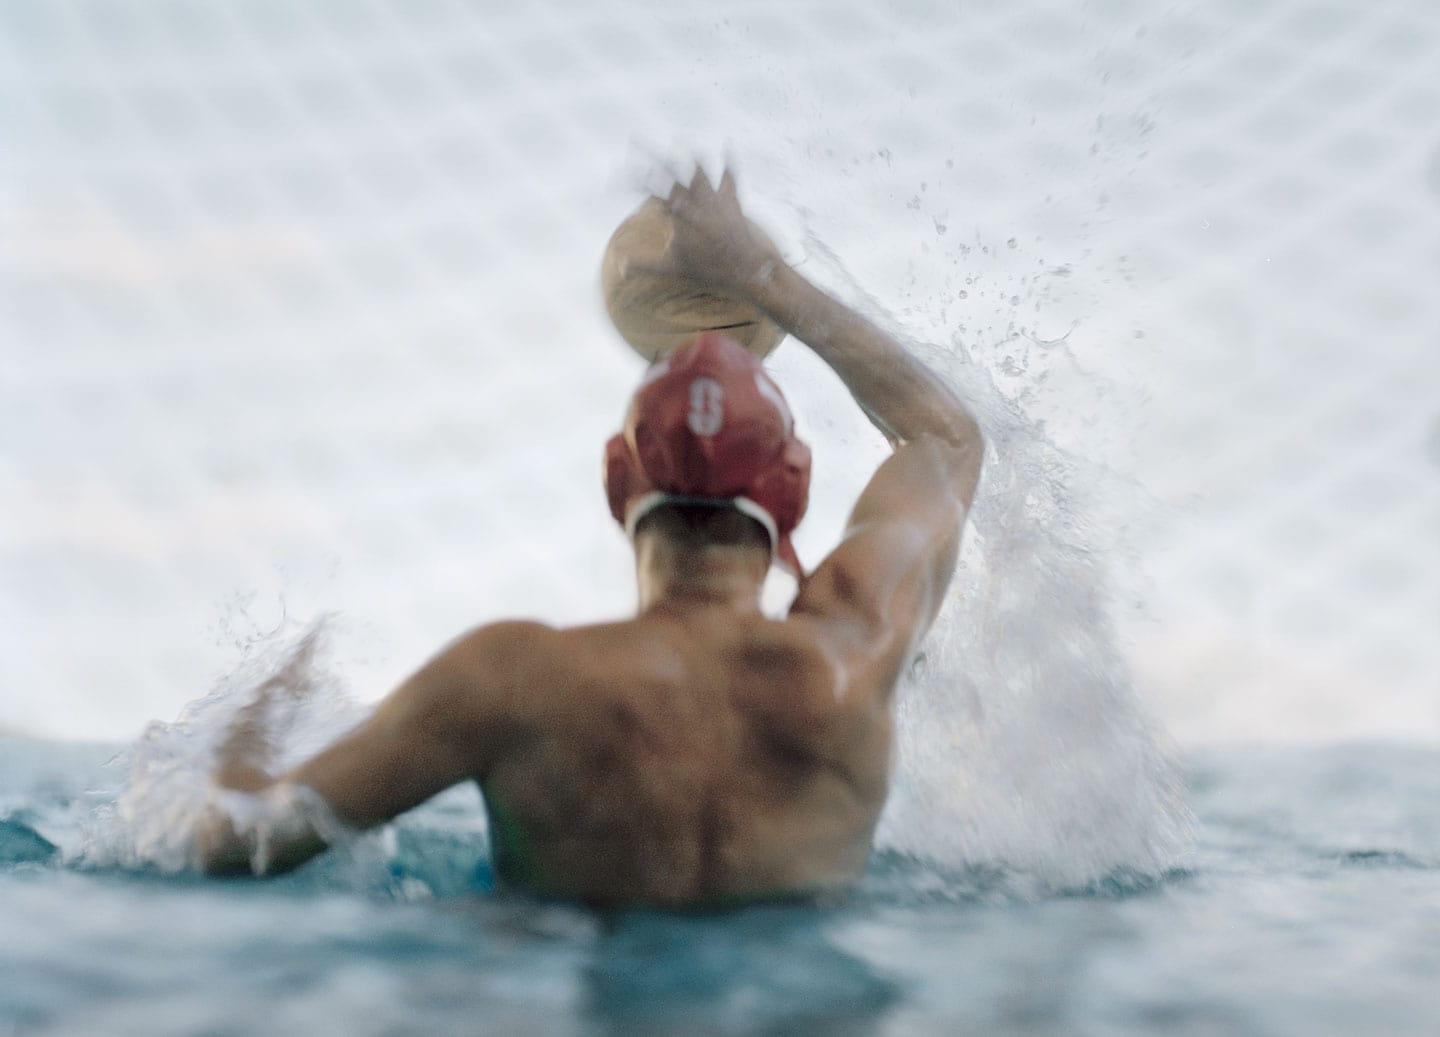 Rod Mclean - water polo player